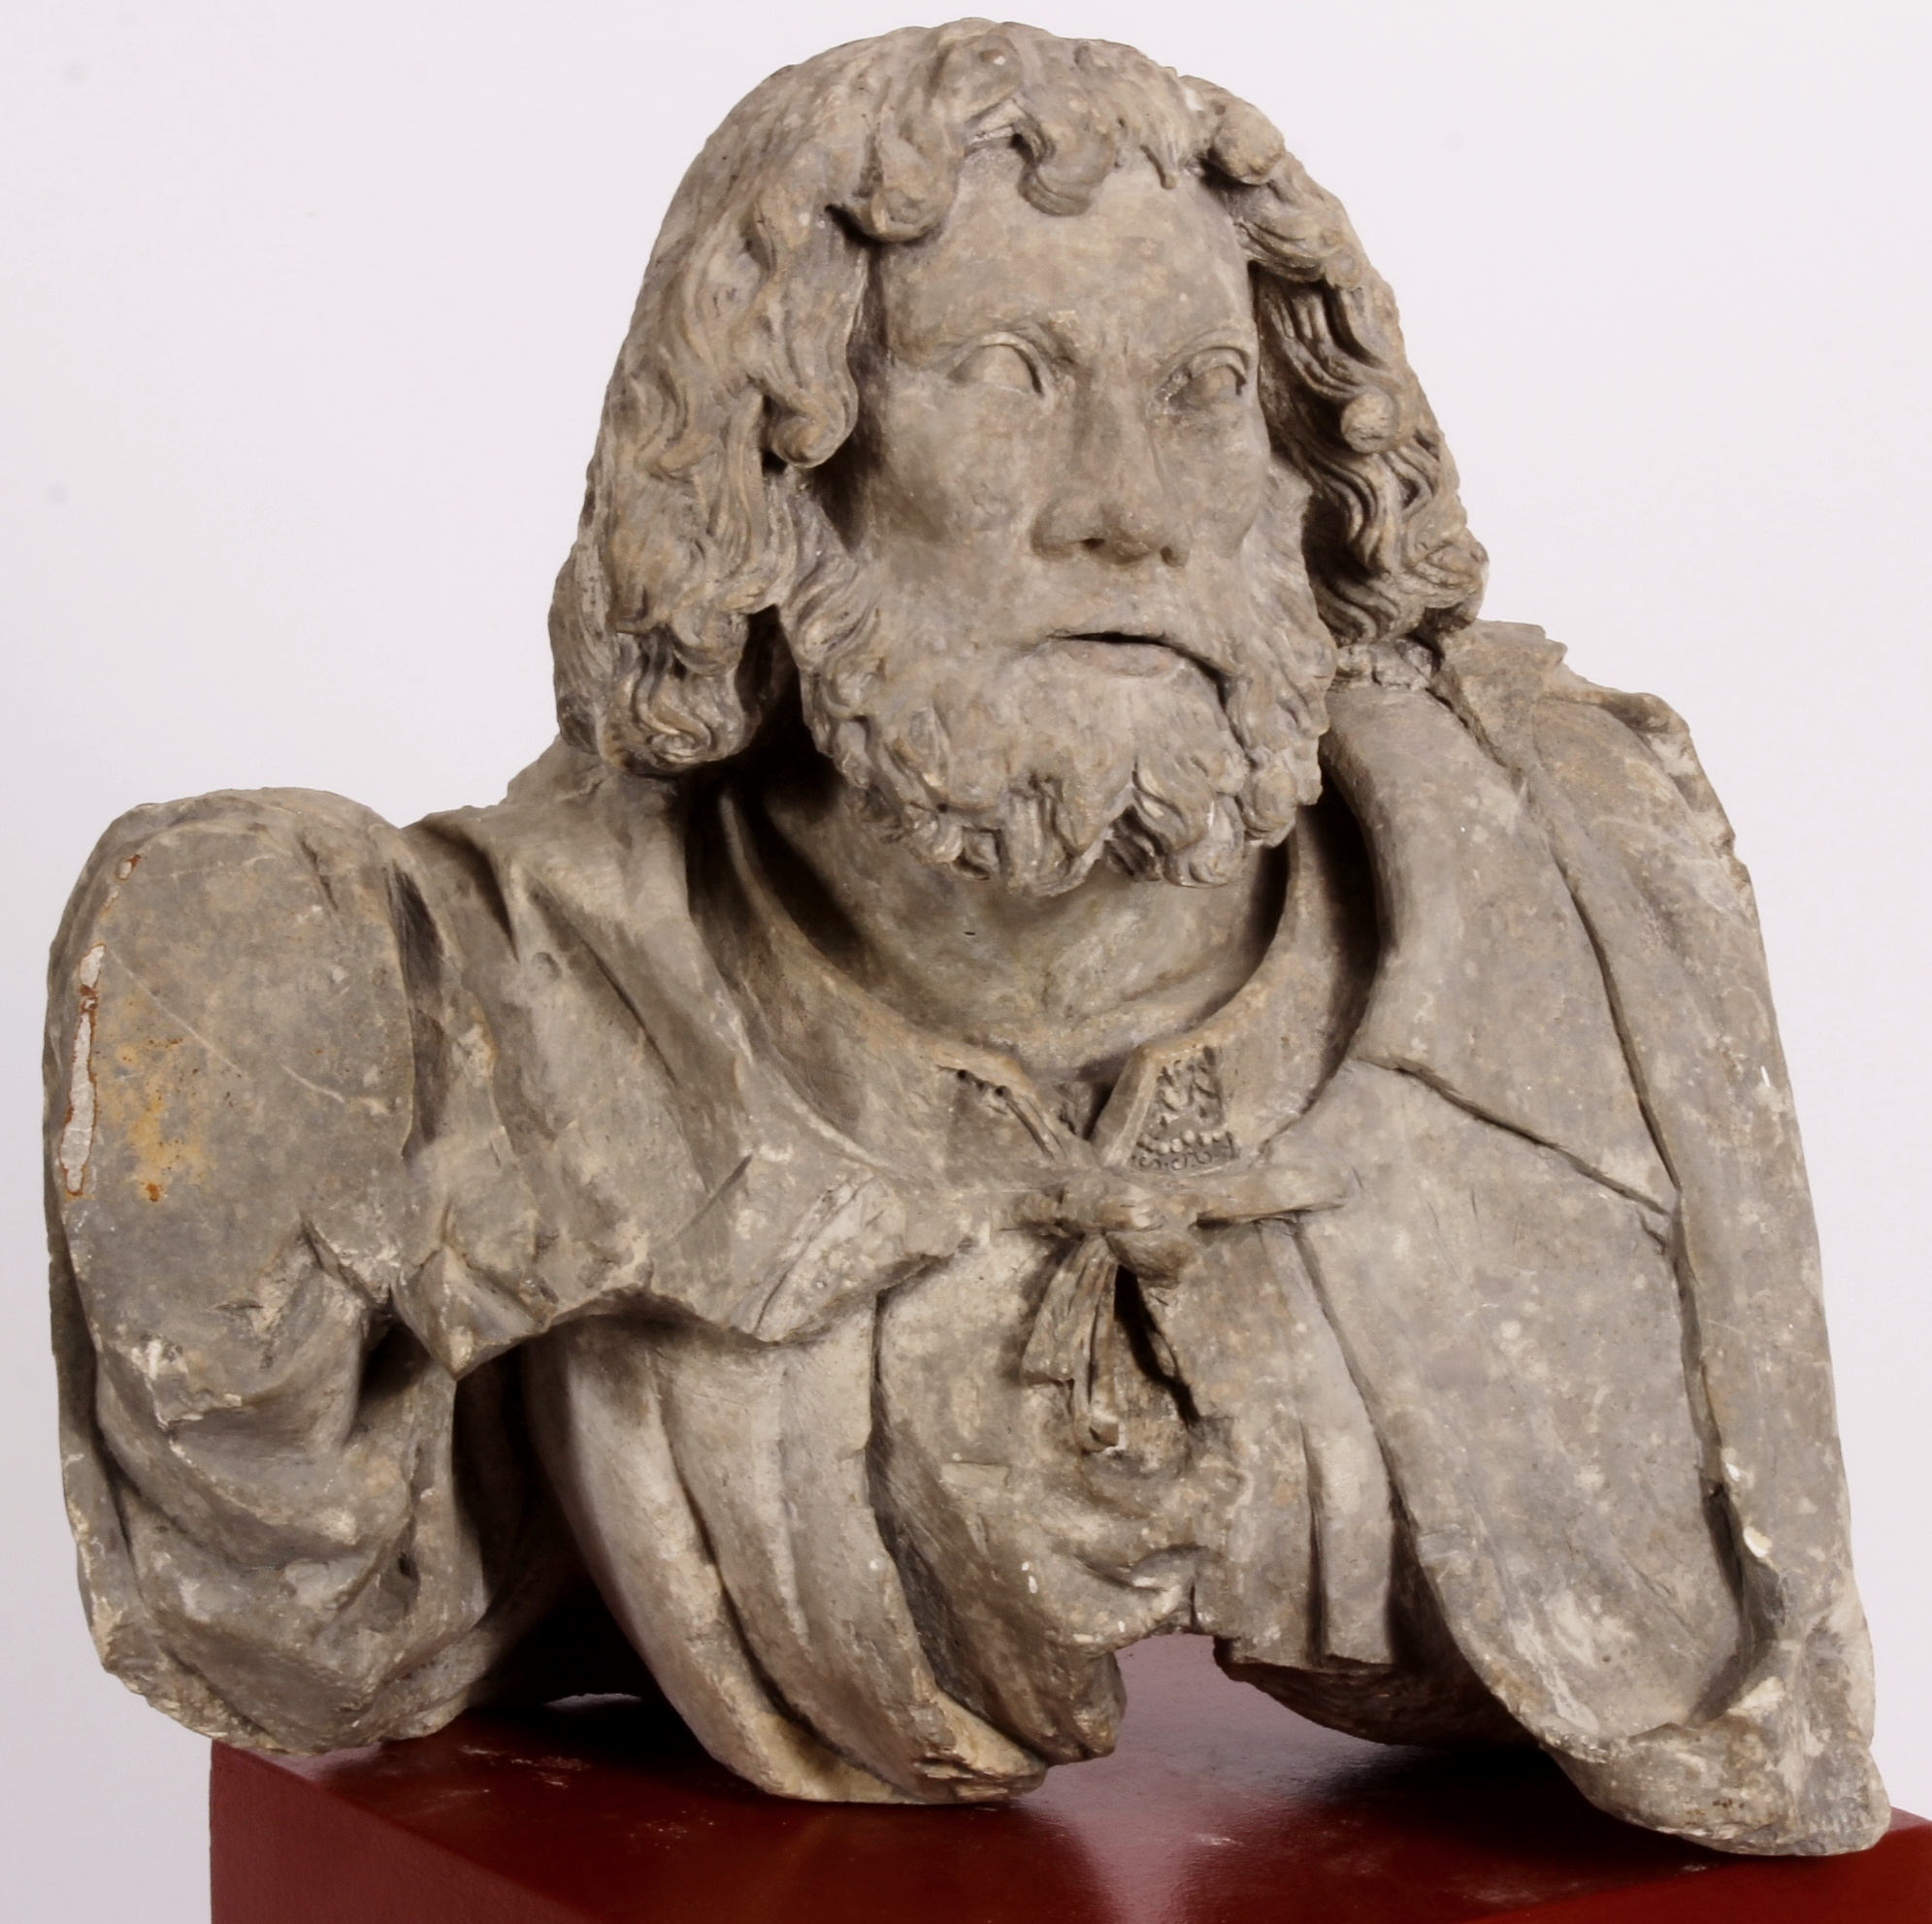 Limestone Bust Of A Man, Alsace-Lorraine Region Of France, 15th C.